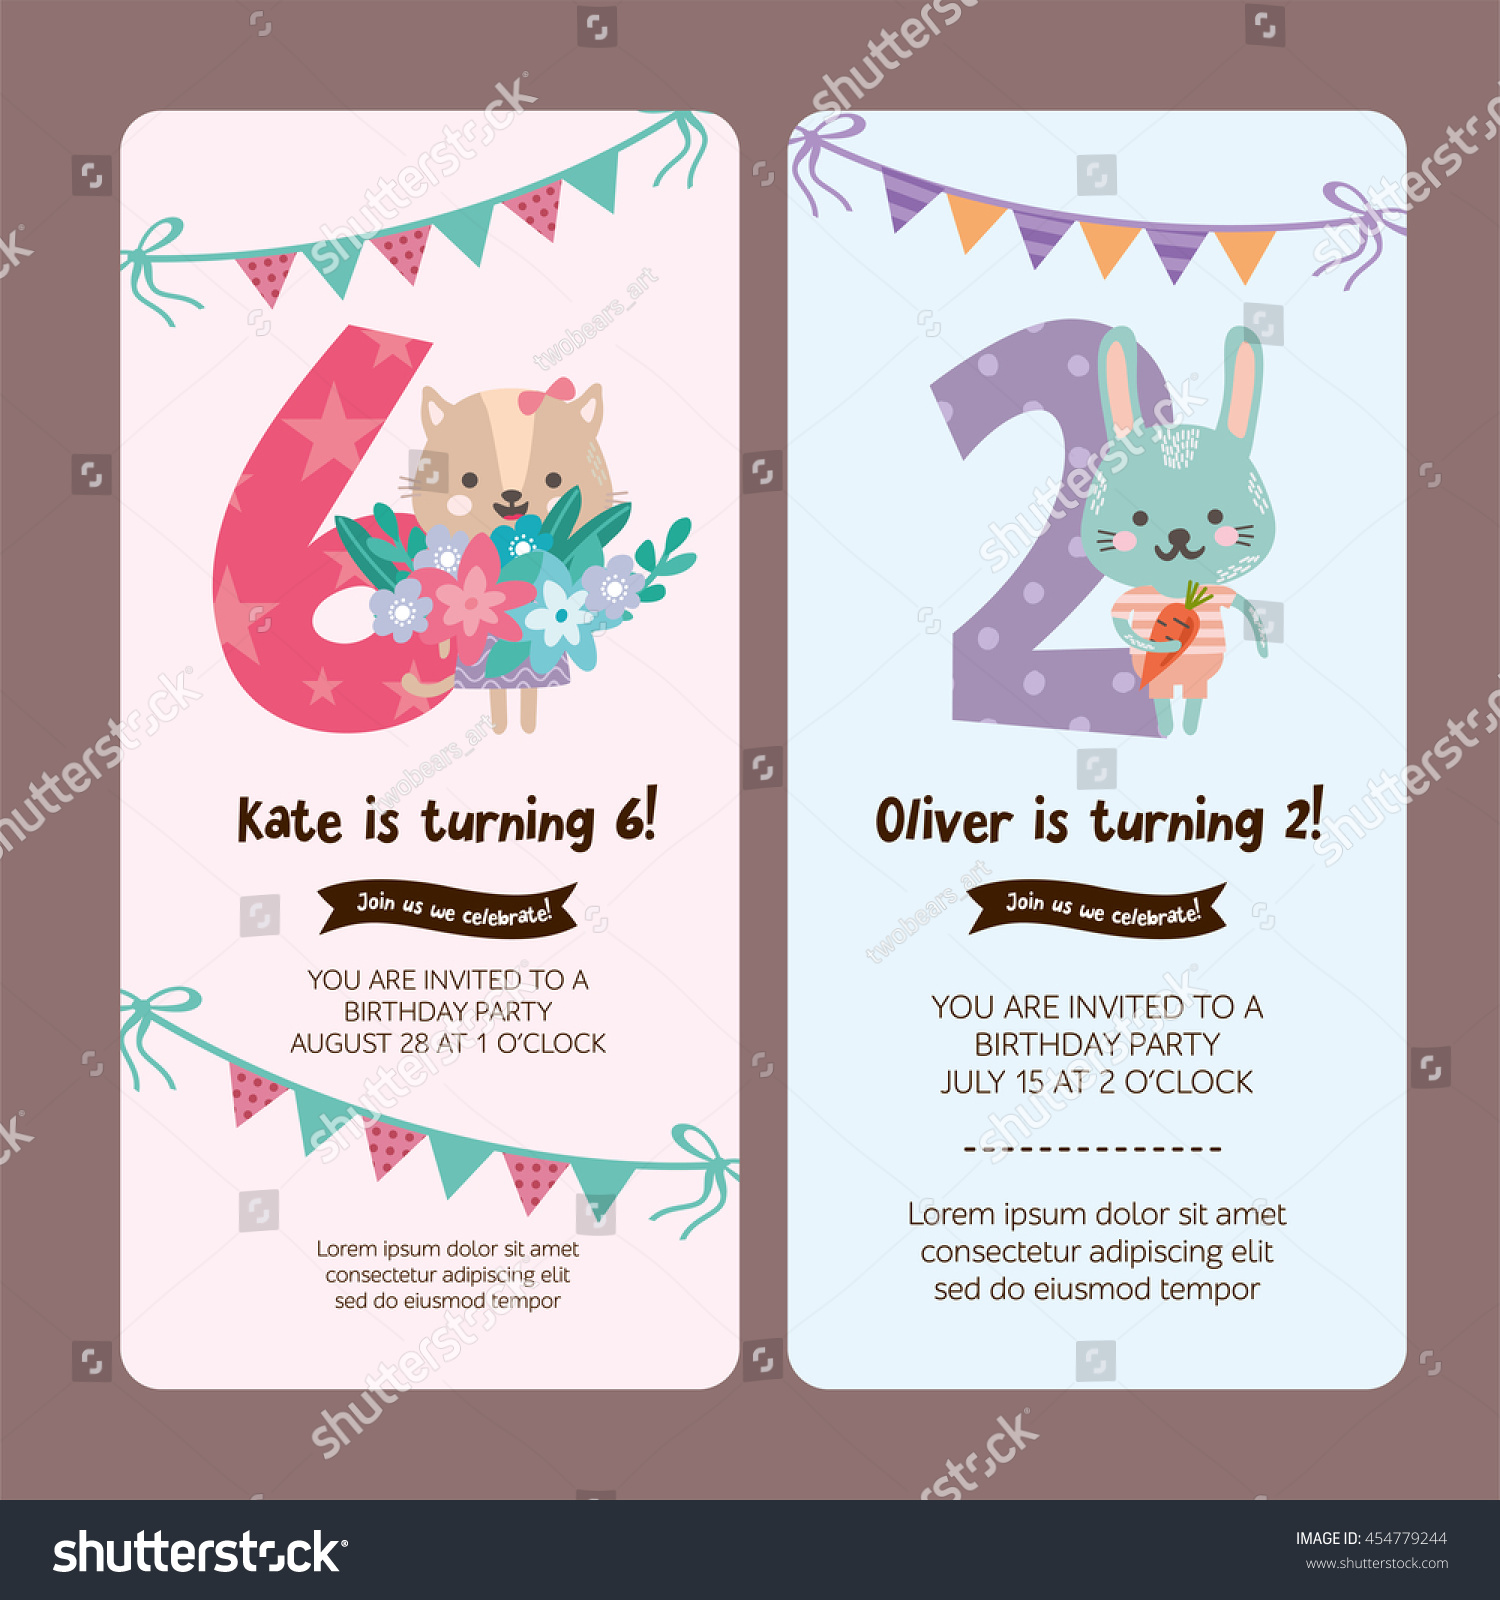 happy birthday invites template pin happy st birthday synyster design cute cat and rabbit happy birthday invitation template